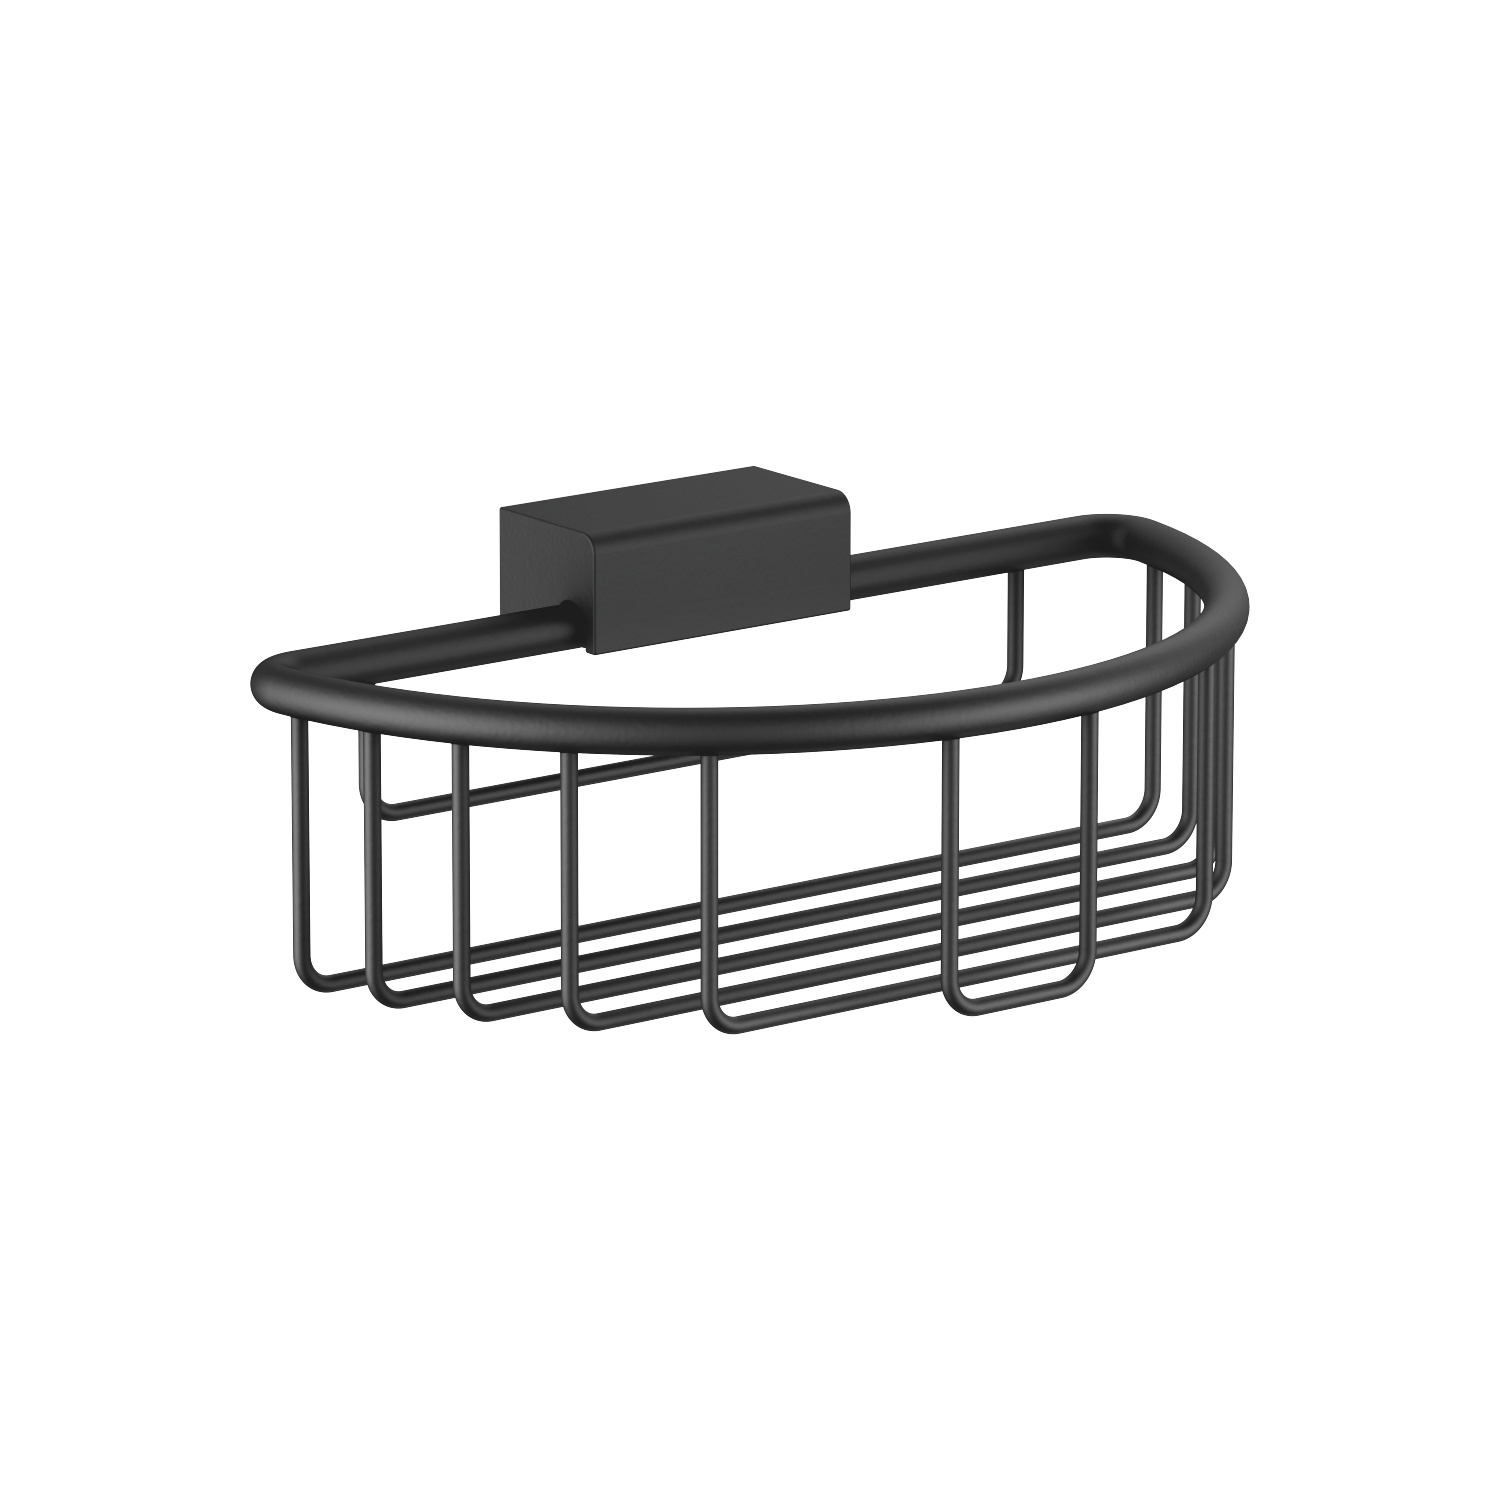 Shower basket for wall-mounted installation - black matte